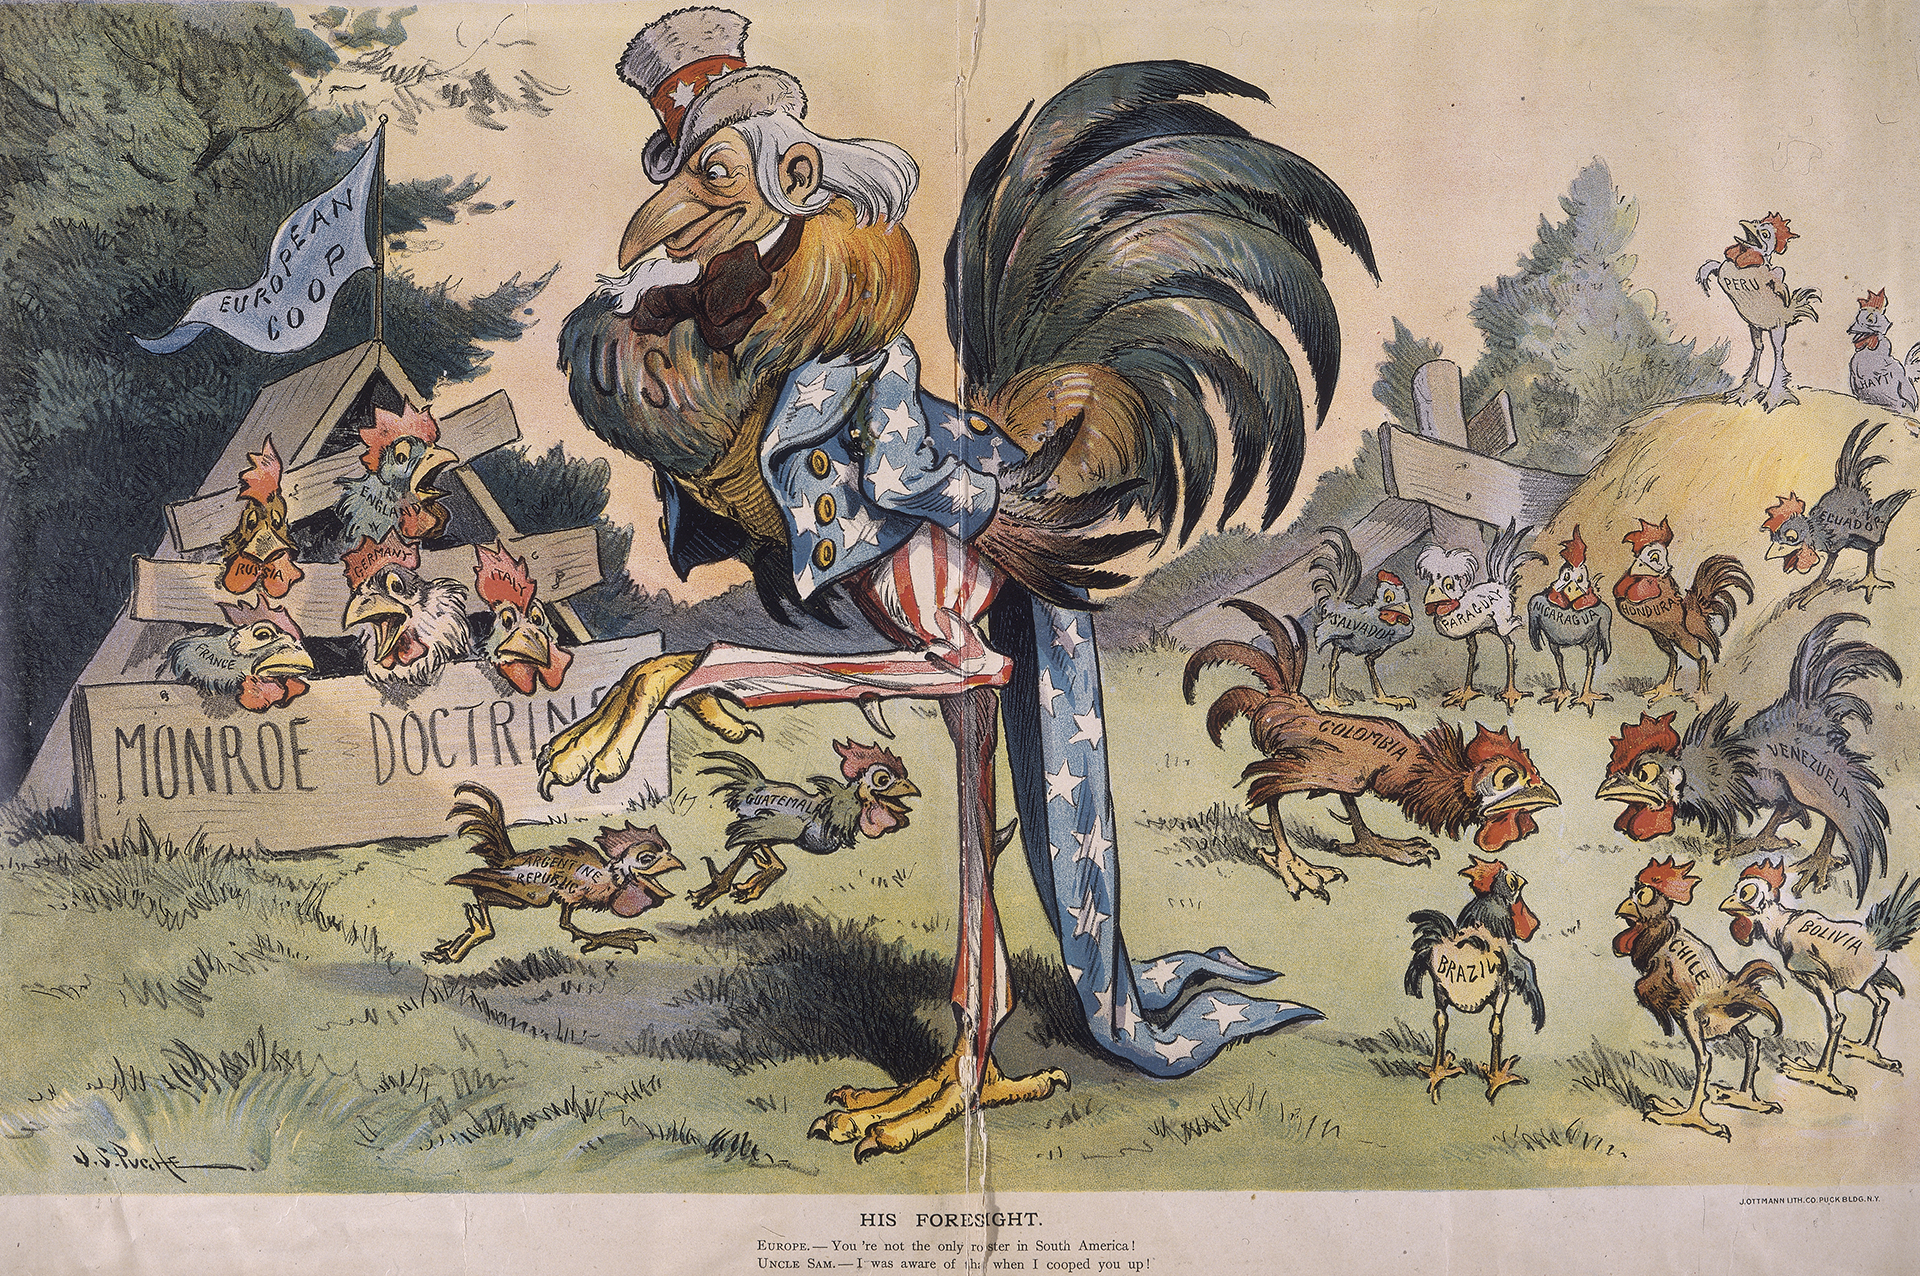 1901 political cartoon that depicts Uncle Sam as a large rooster, while European nations are represented by birds in a coop marked 'Monroe doctrine.' (Credit: Fotosearch/Getty Images).